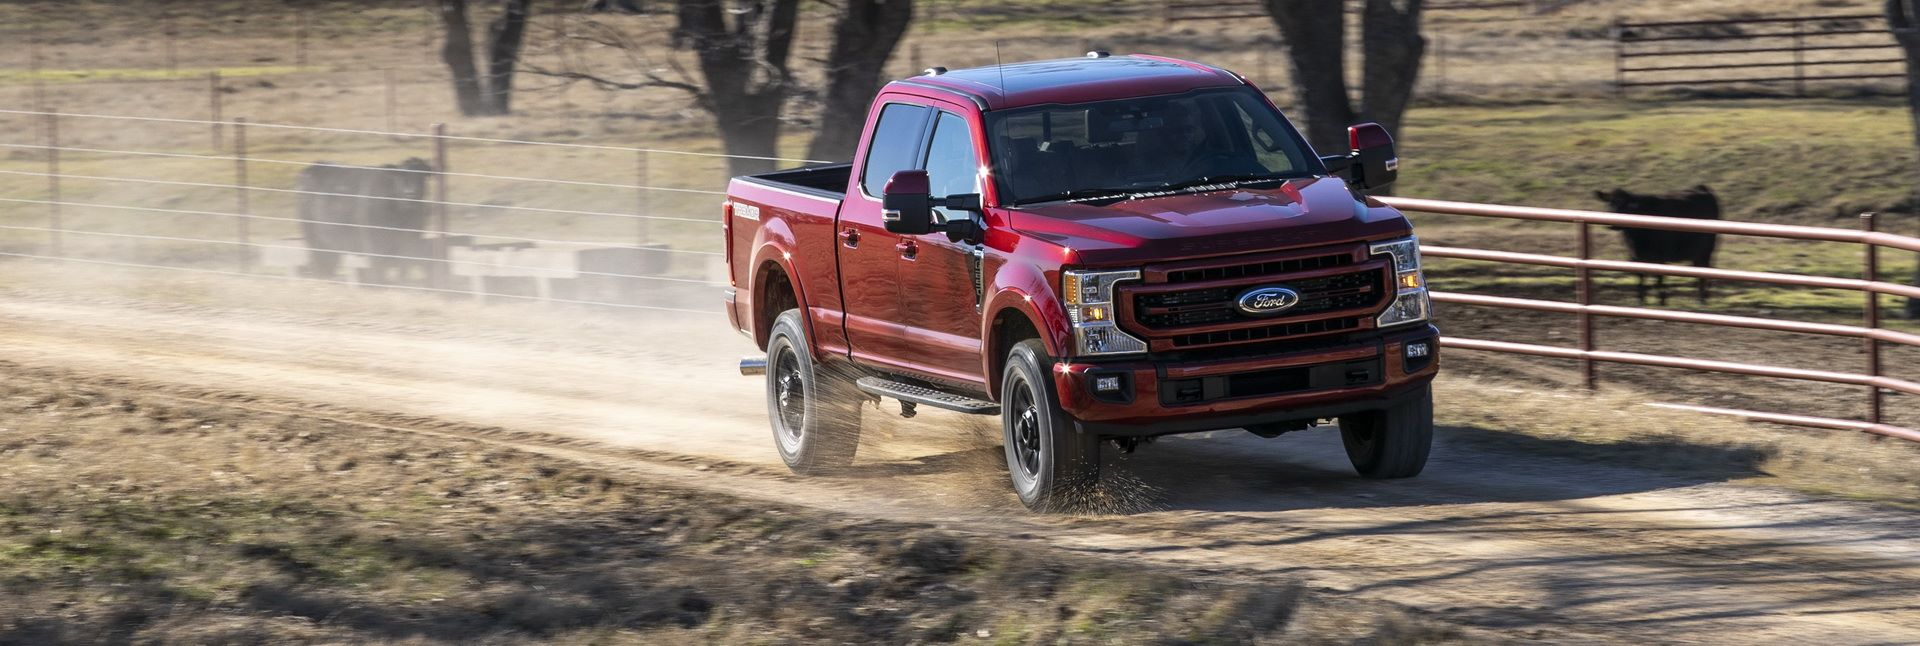 Ford-Super-Duty-2022-12